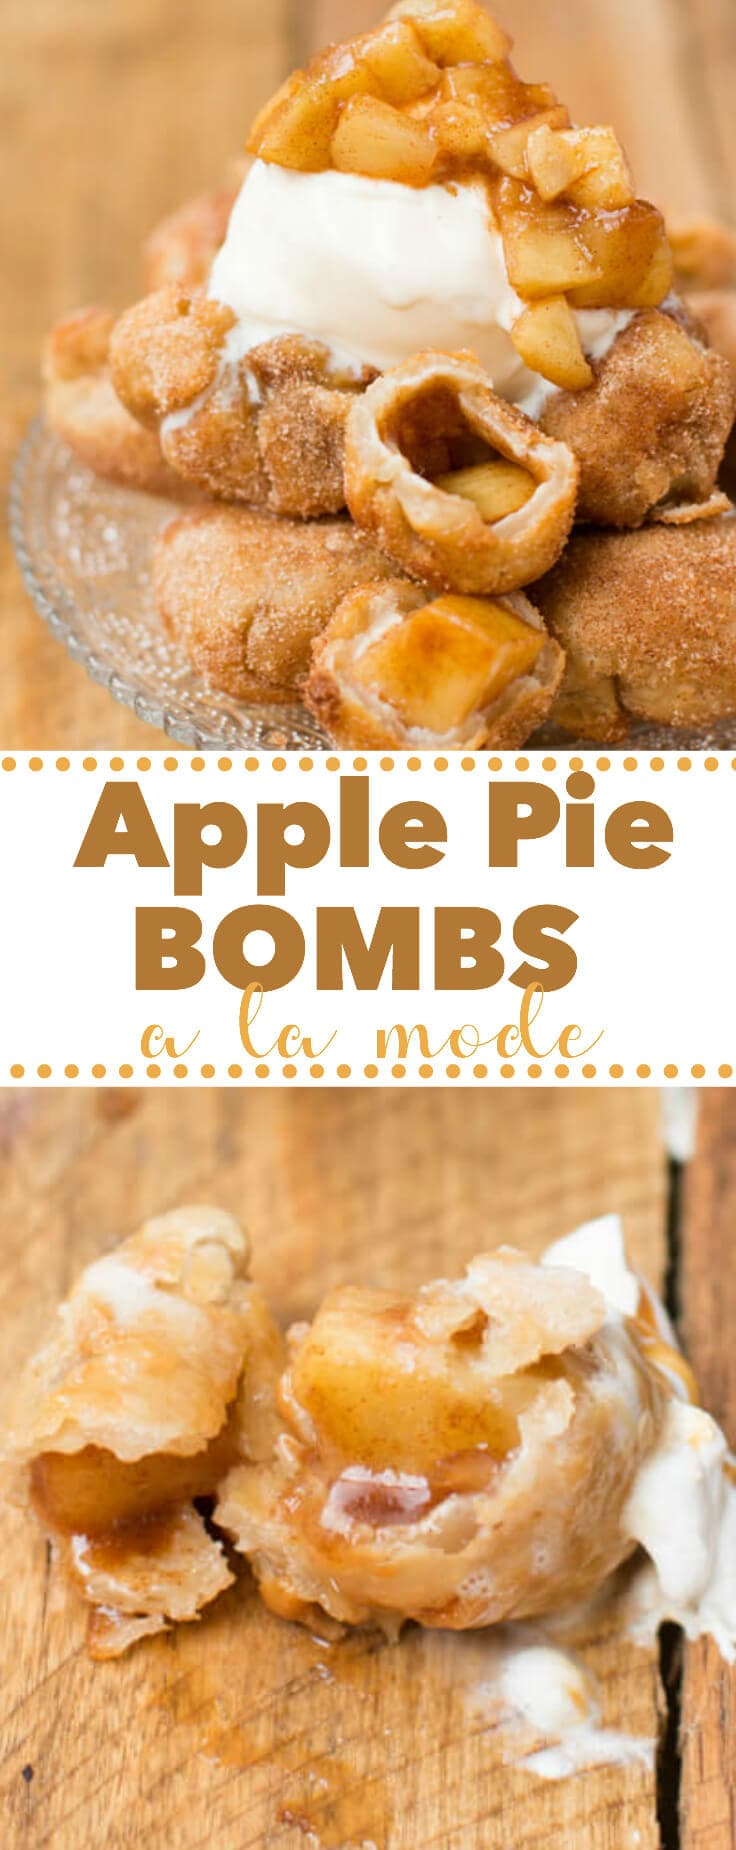 It's not fall until you've made apple pie bombs a la mode with creamy vanilla ice cream and glazed apples all over the tops. I love fall dessert recipes!It's not fall until you've made apple pie bombs a la mode with creamy vanilla ice cream and glazed apples all over the tops. I love fall dessert recipes!